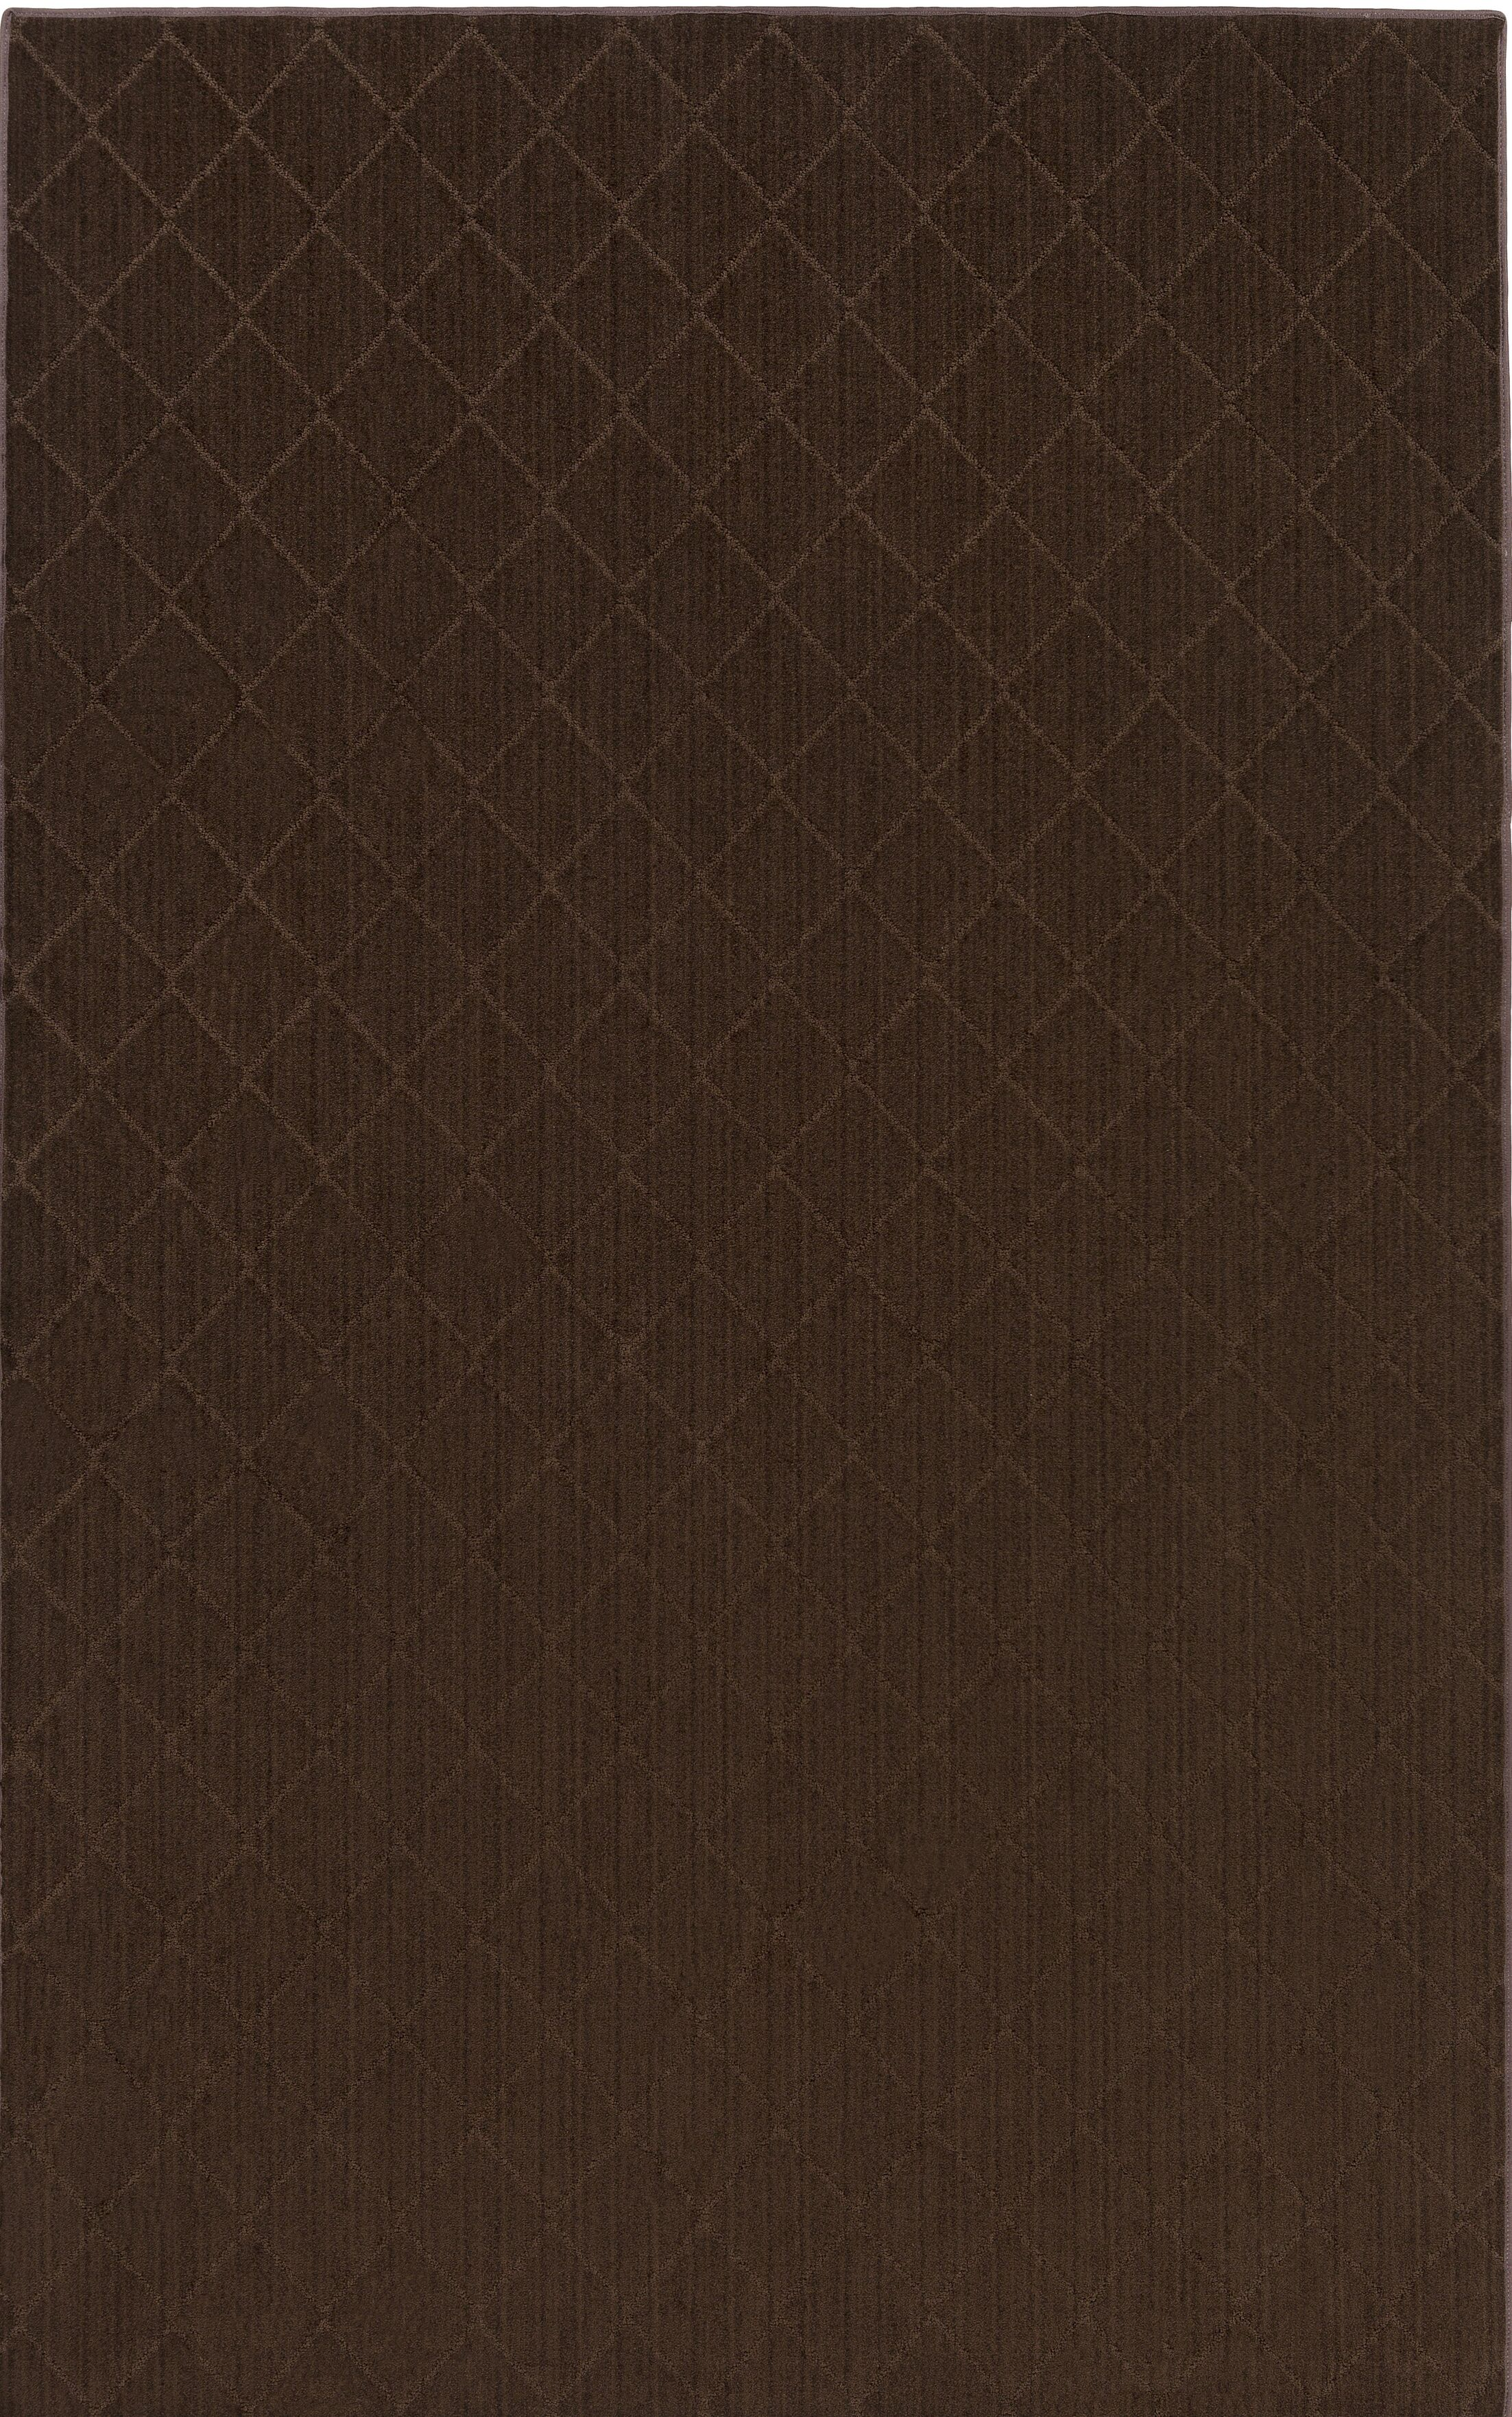 Huxley Brown Area Rug Rug Size: Rectangle 5' x 8'